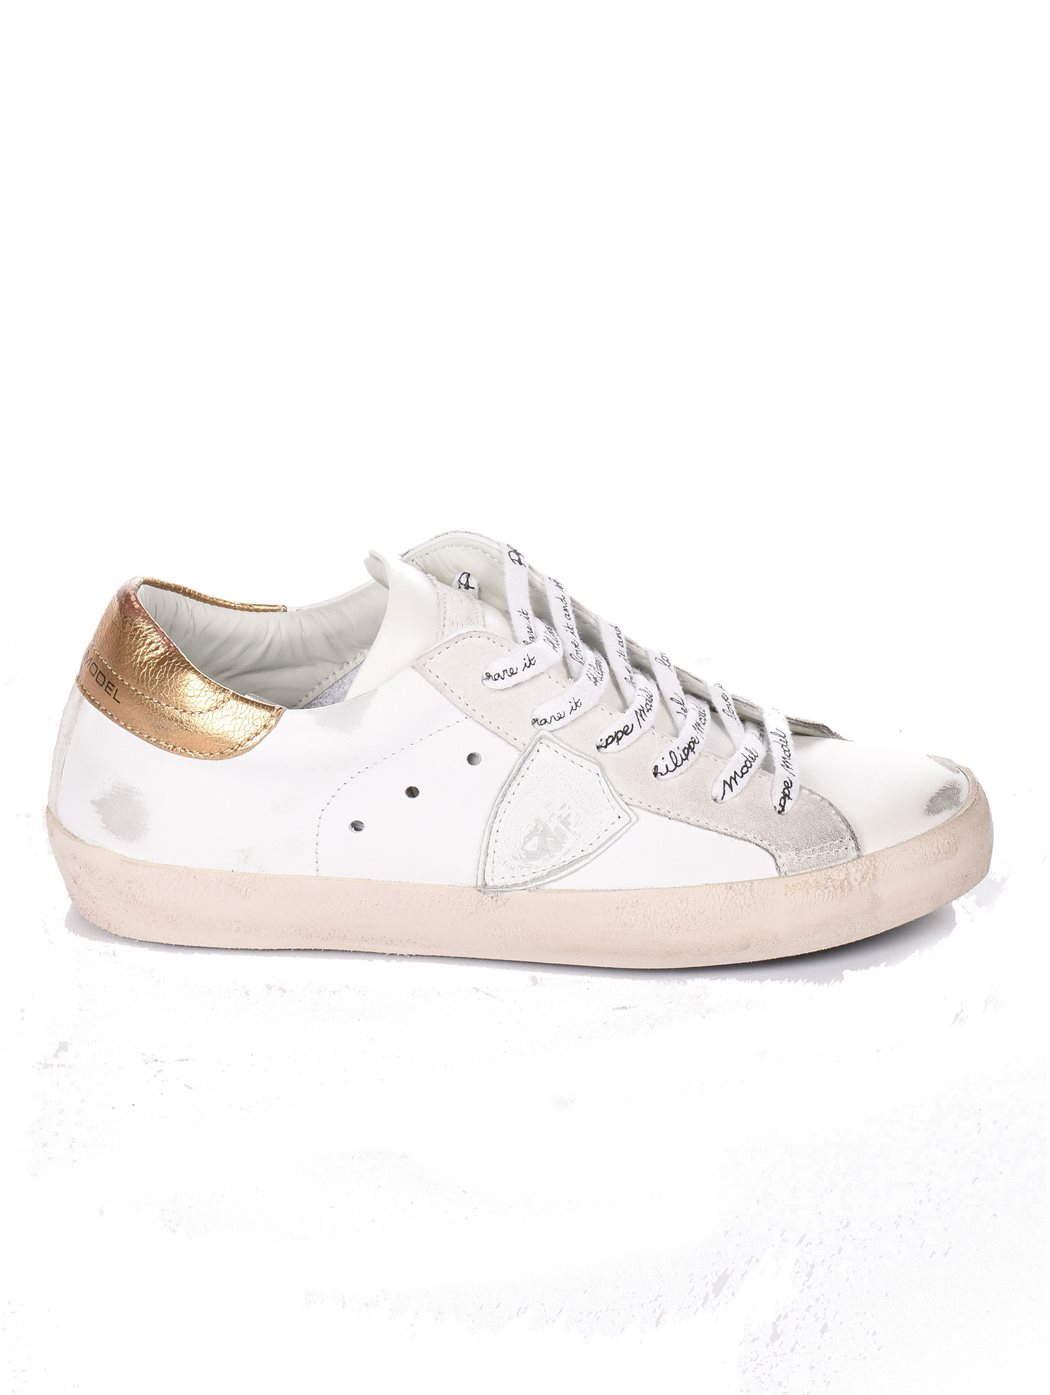 PHILIPPE MODEL CLLD METAL/BLAN SNEAKERS